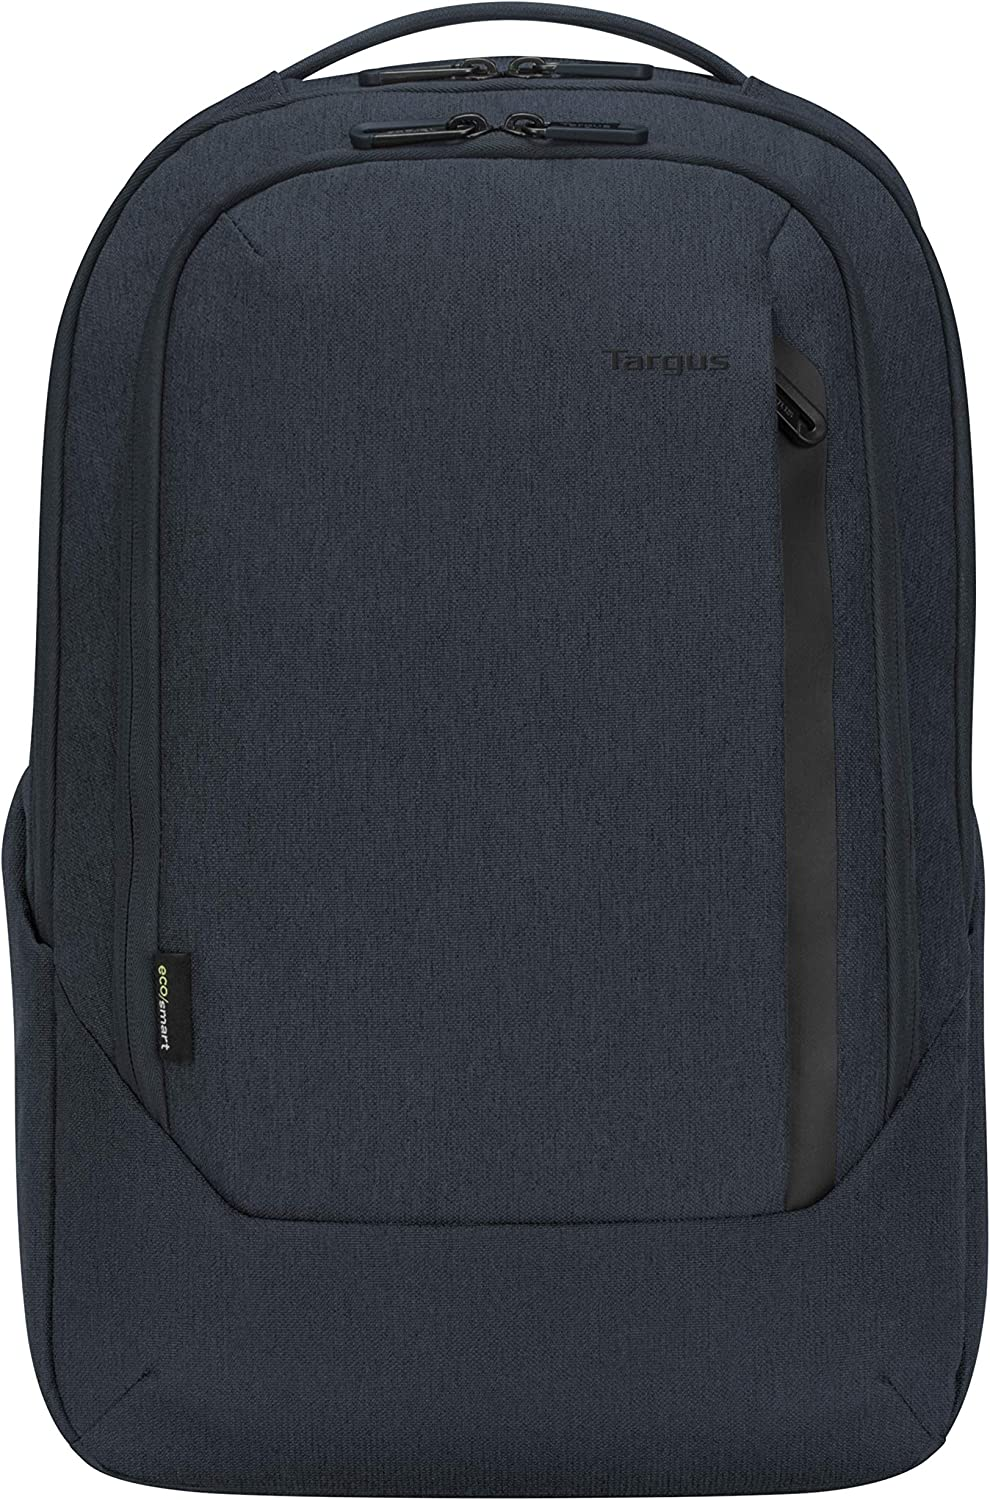 Targus Cypress Hero Backpack with EcoSmart Designed for Business Traveler and School fit up to 15.6-Inch Laptop/Notebook, Navy (TBB58601GL)